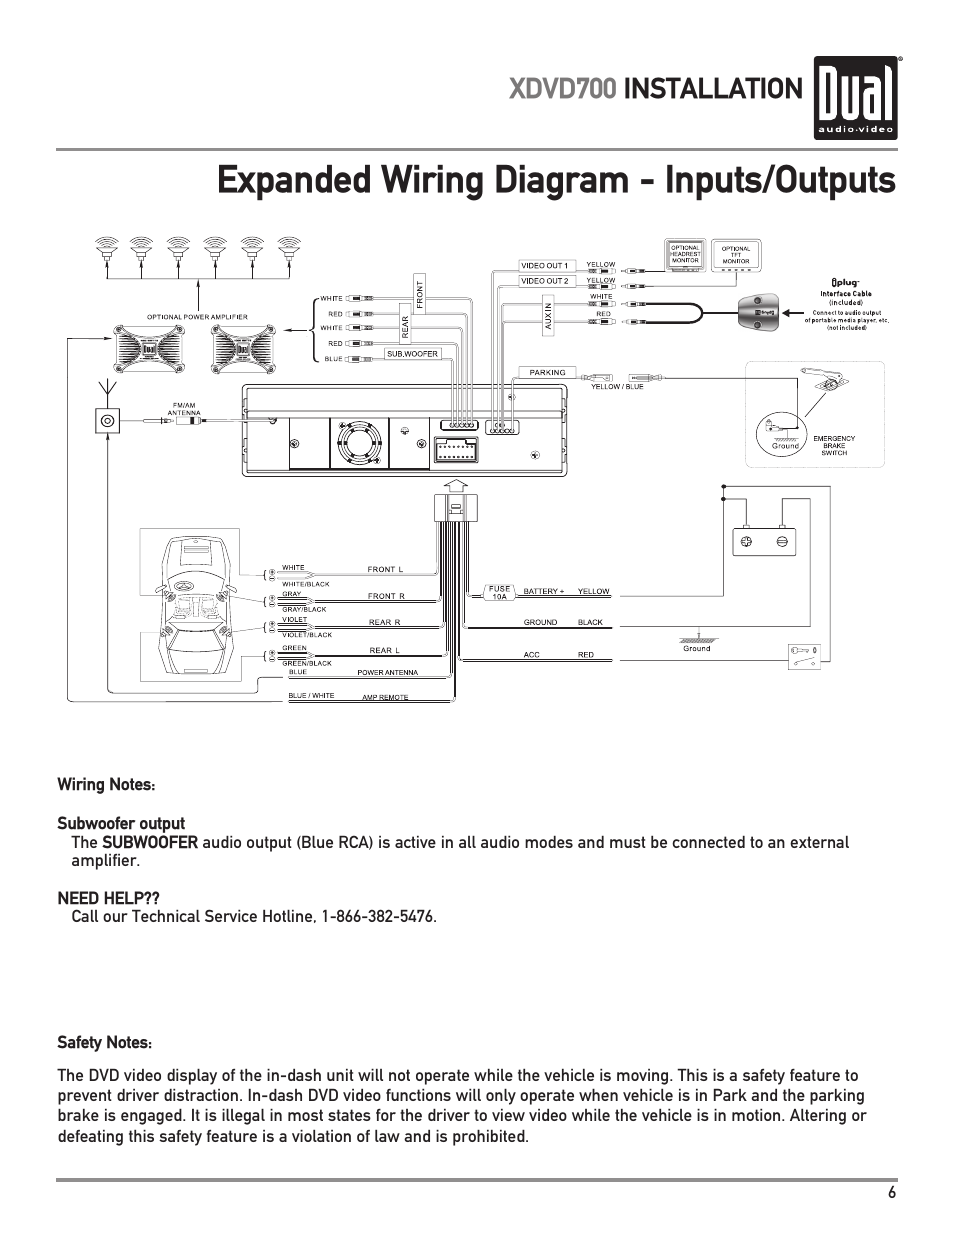 1994 lincoln town car radio wiring diagram dual xd5250 car radio wiring diagram expanded wiring diagram - inputs/outputs, xdvd700 ...